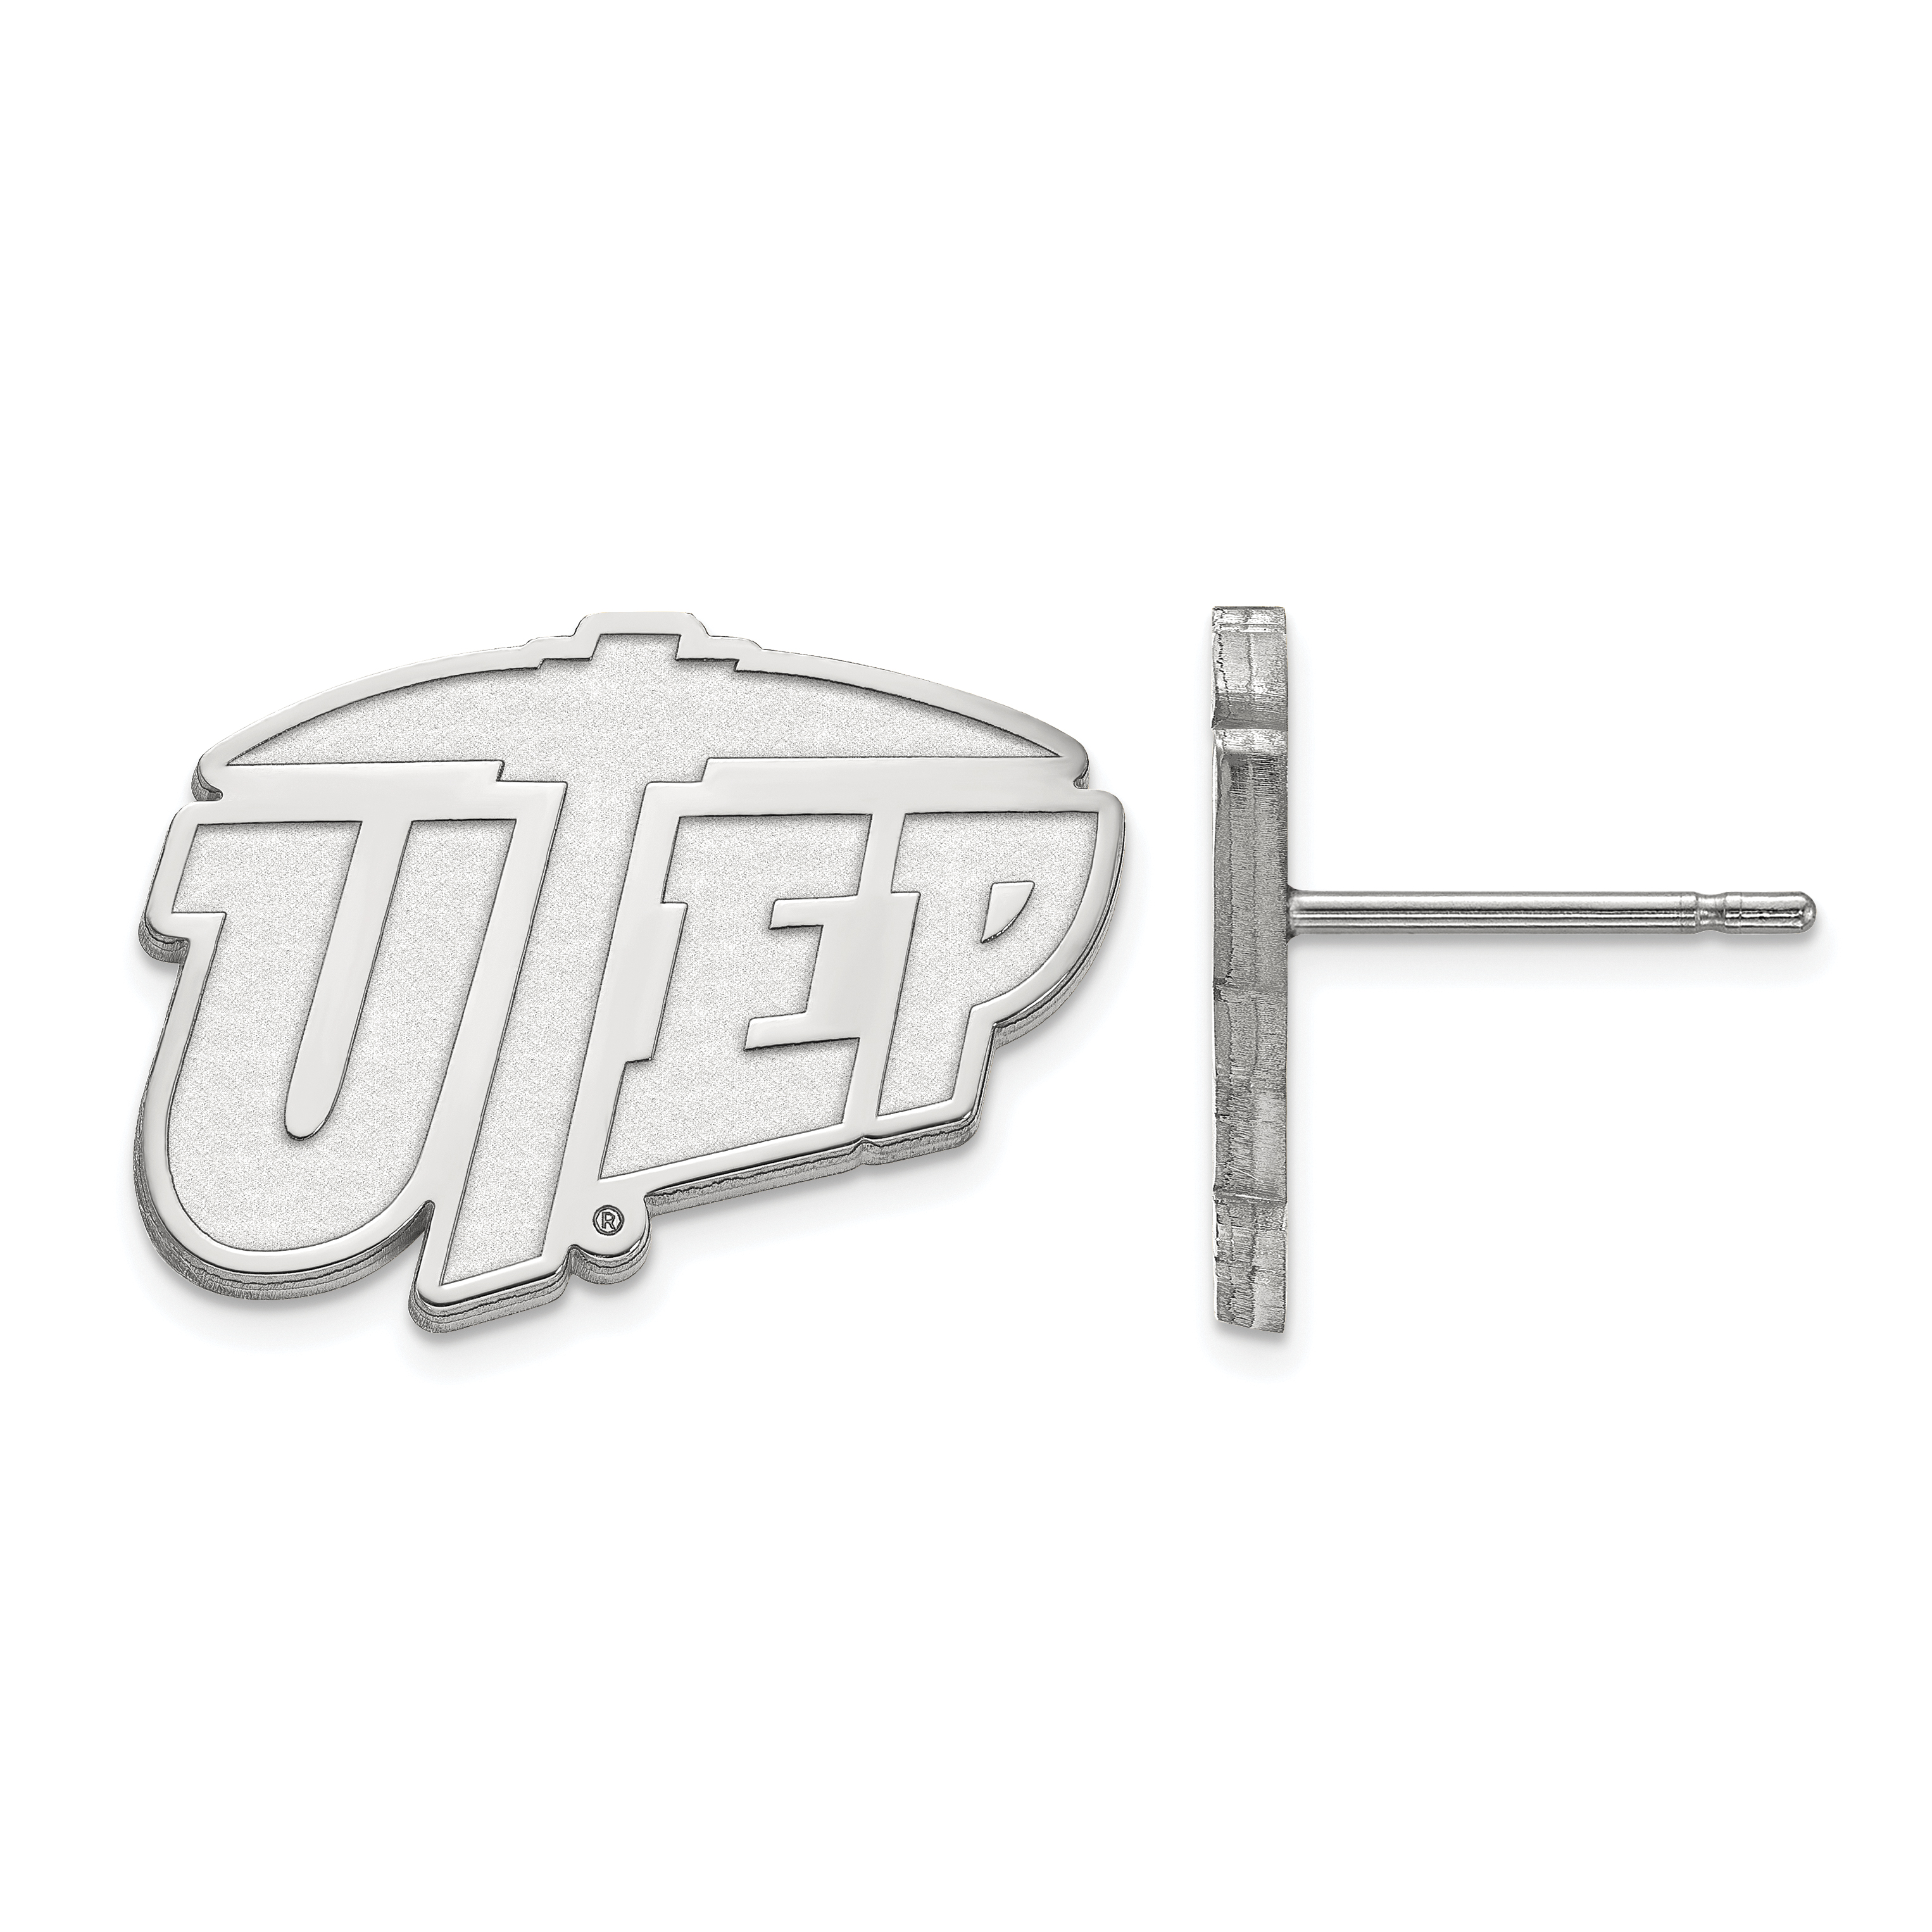 10kw The University of Texas at El Paso Small Post Earrings. weight: 2.32, Lengh: 12mm